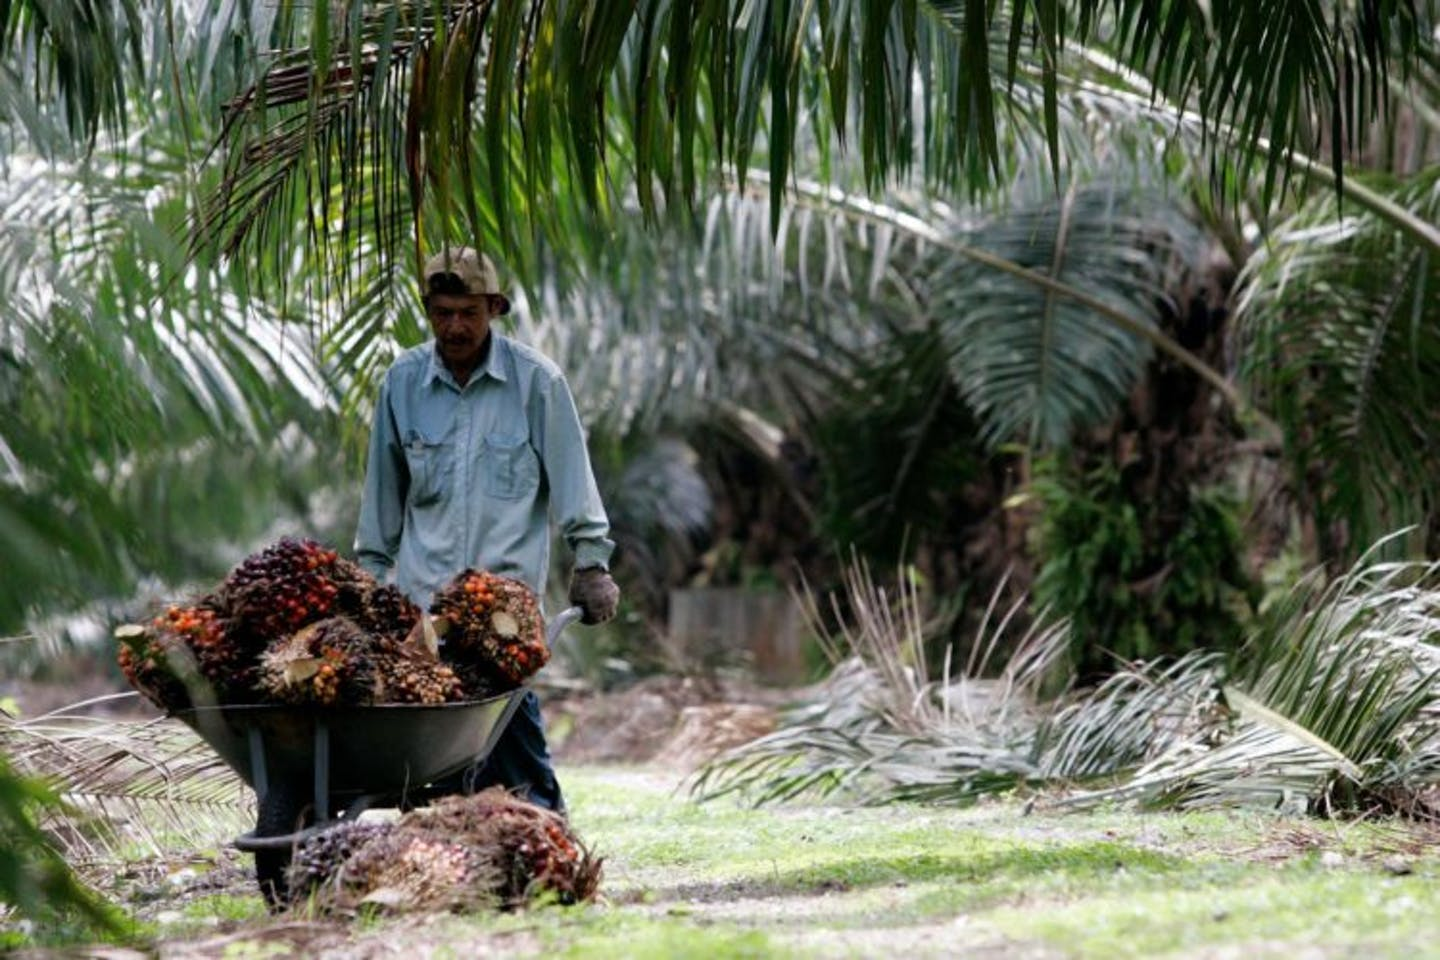 Can only western buyers afford sustainable palm oil?